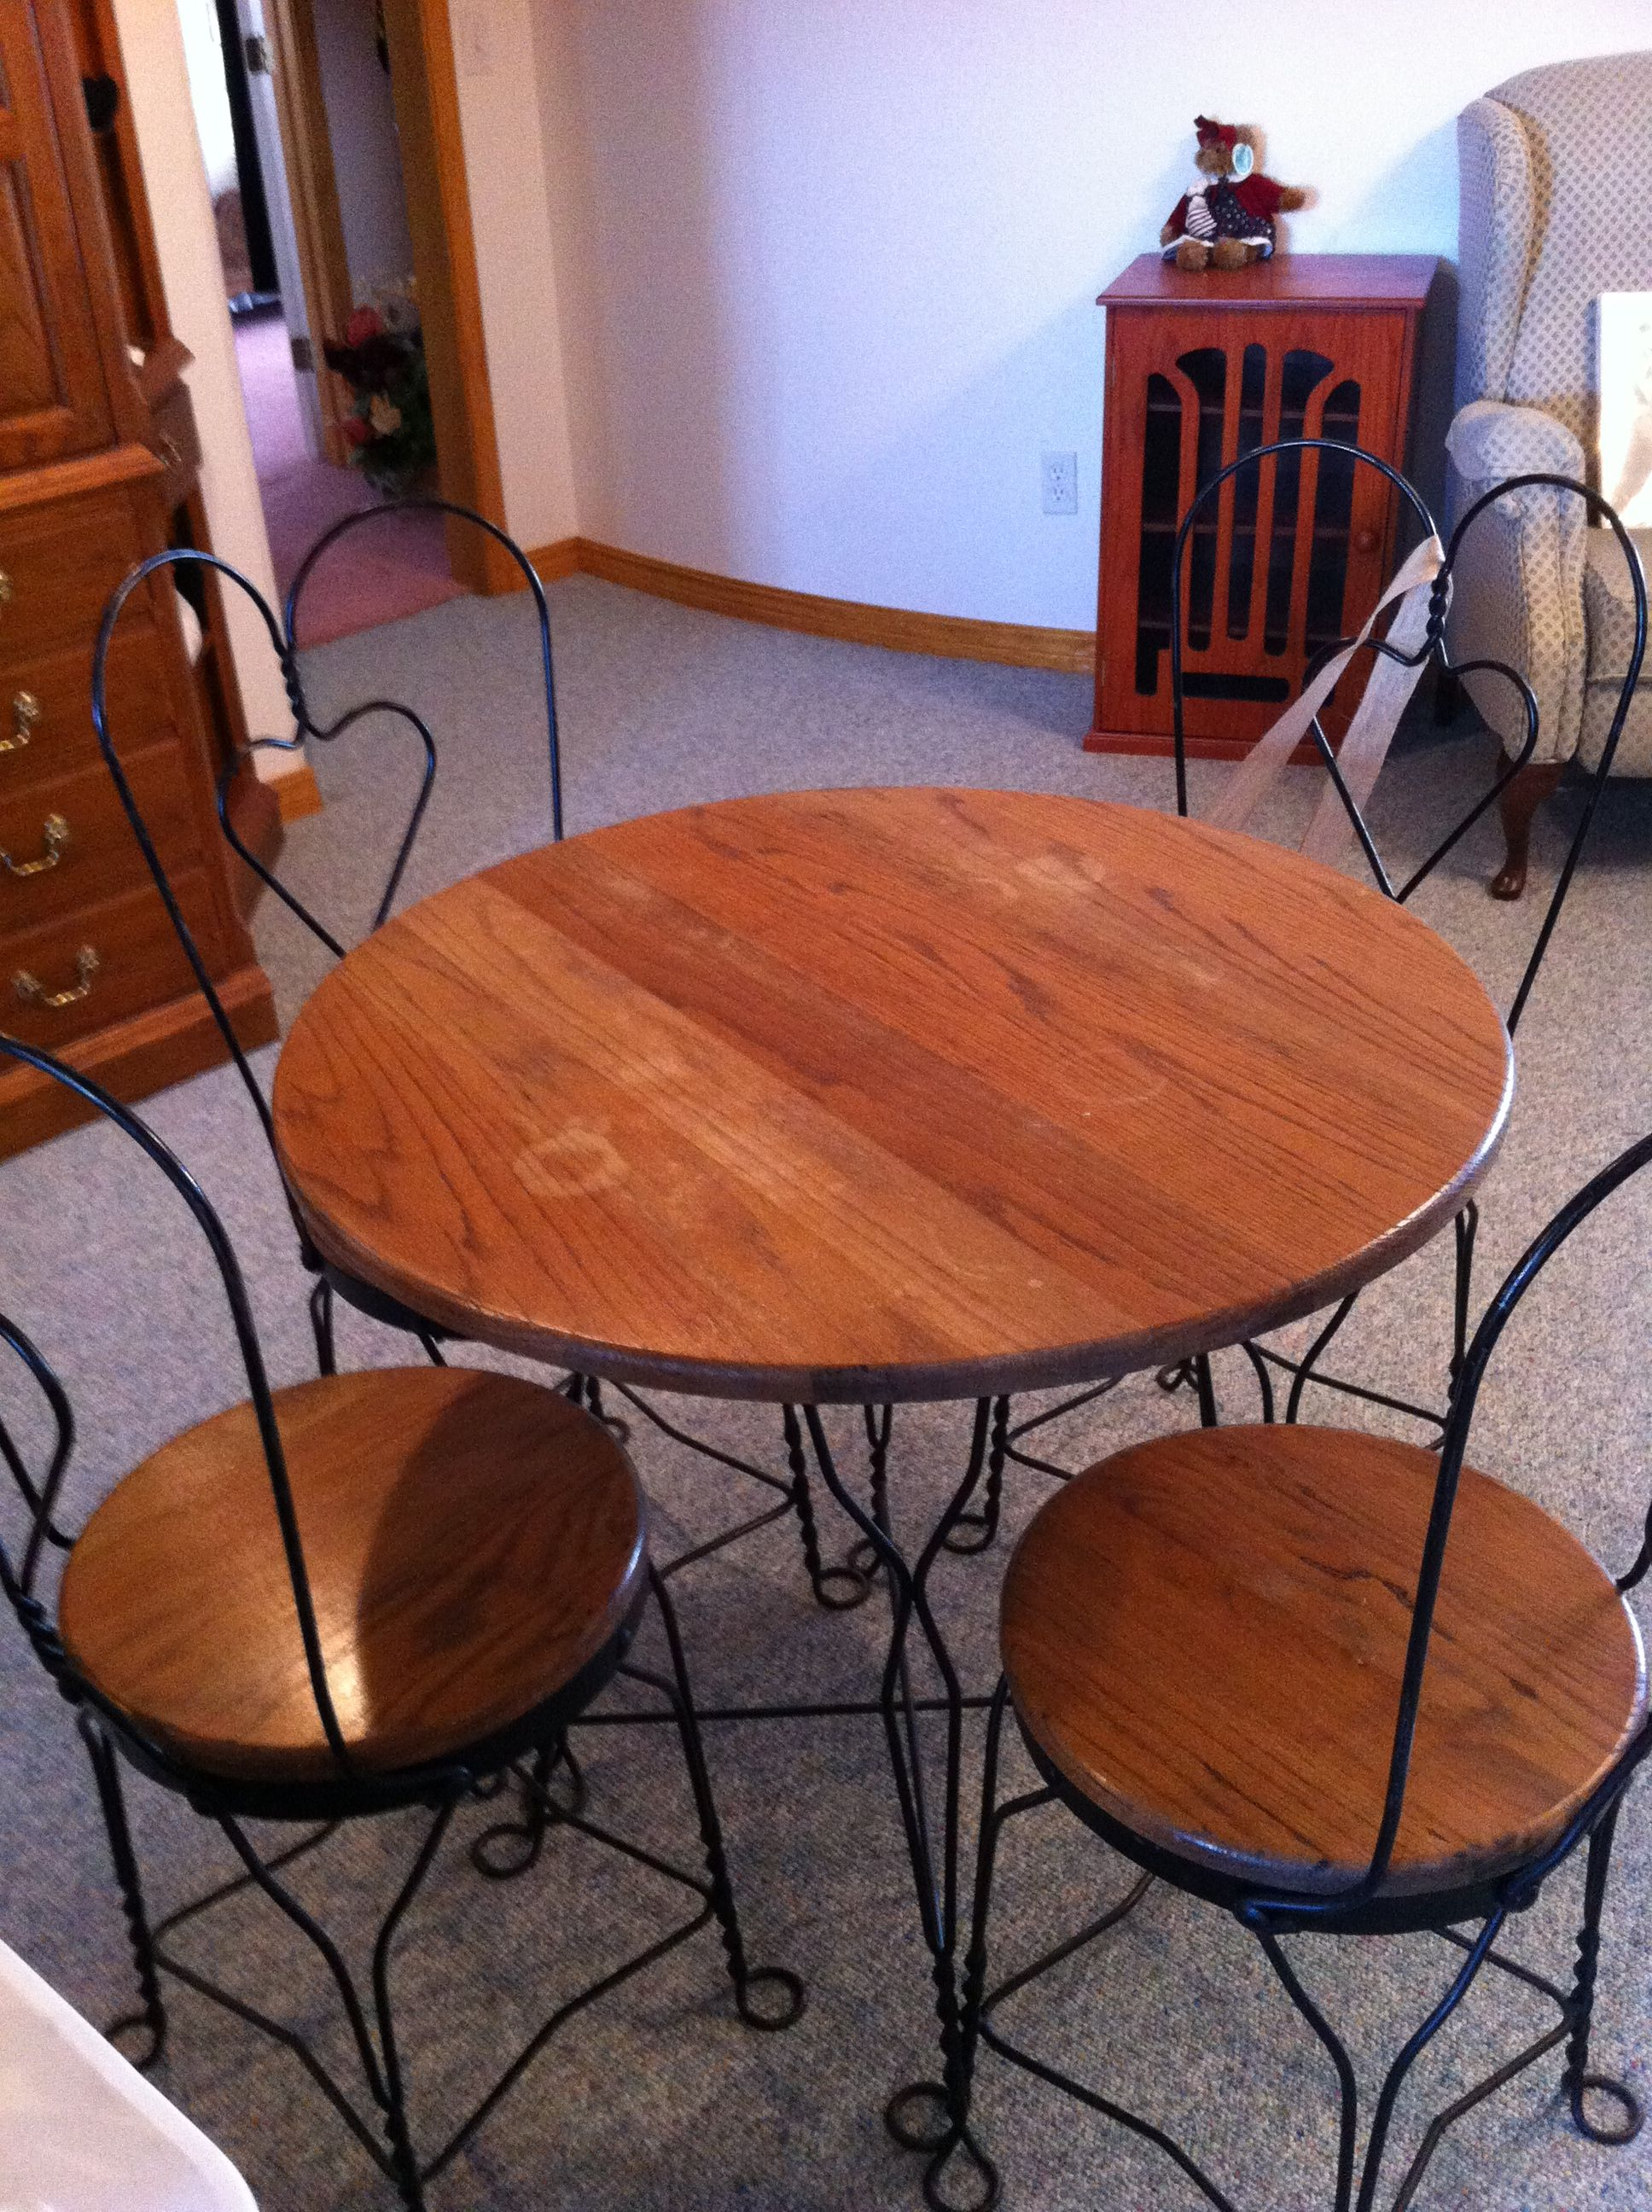 Antique Ice Cream Parlor Table And Chair For Sale At The Barker